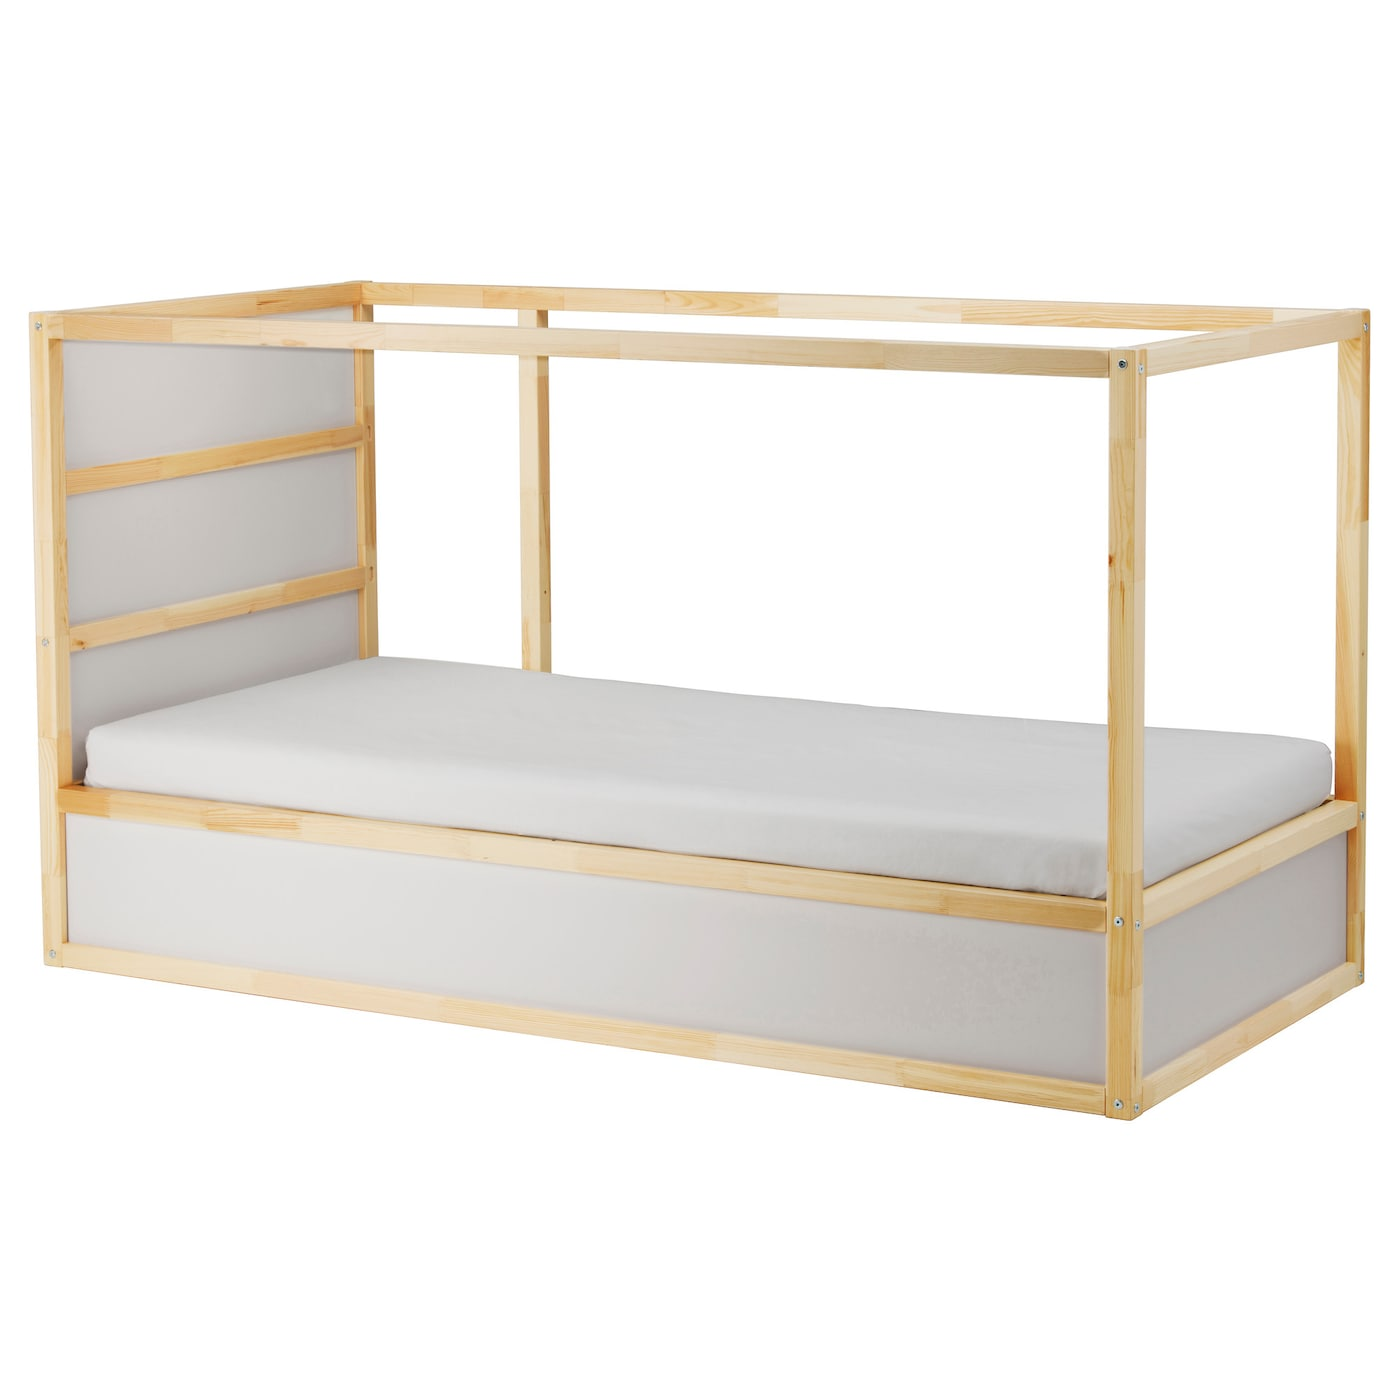 Ikea Kura Reversible Bunk Bed